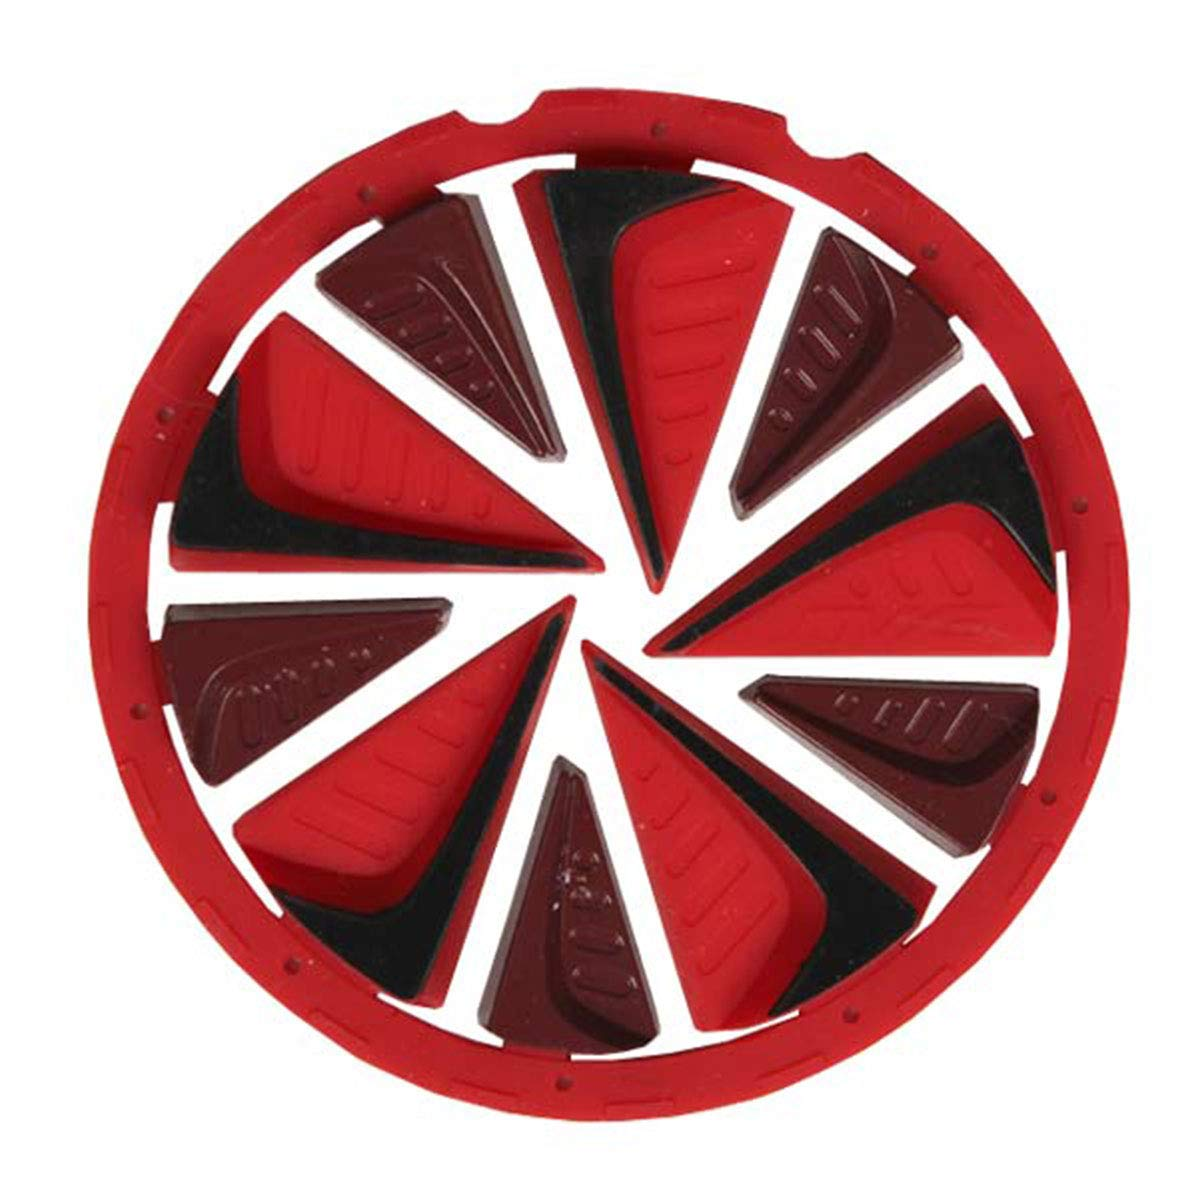 Exalt Paintball Fast Feed - Dye Rotor/LTR - Red by Exalt